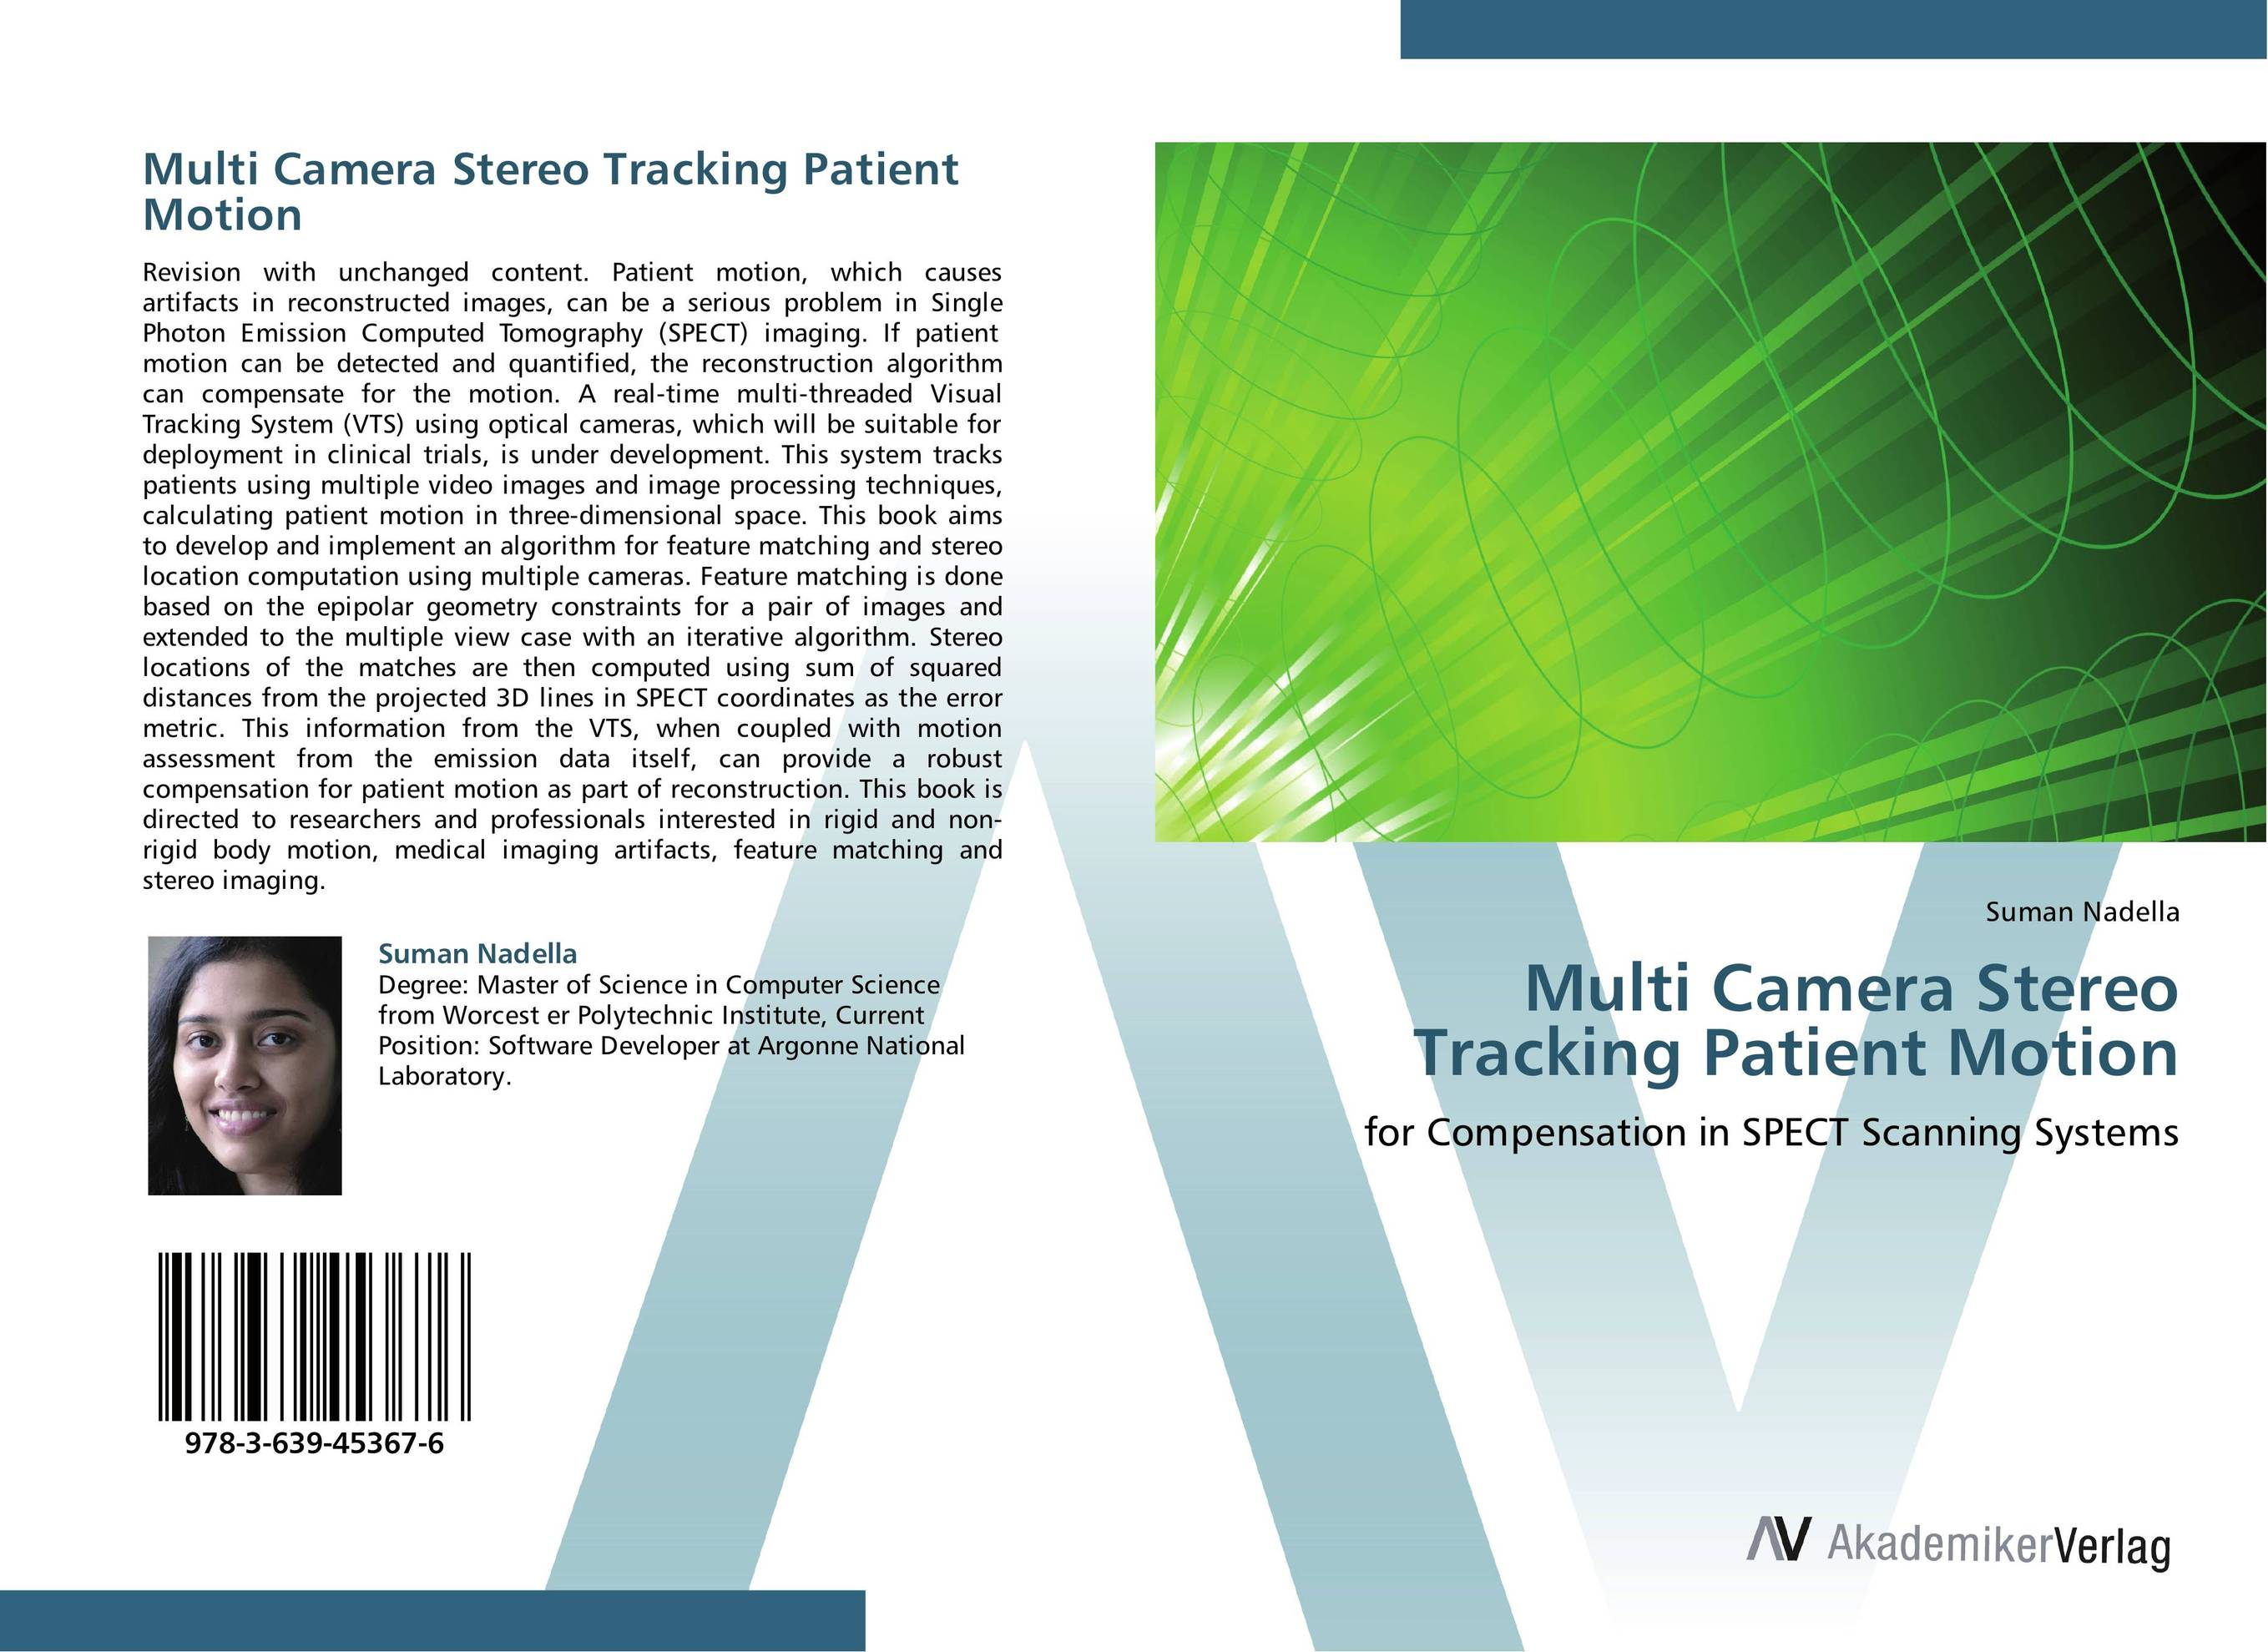 Multi Camera Stereo Tracking Patient Motion performance evaluation of disparity for stereo images